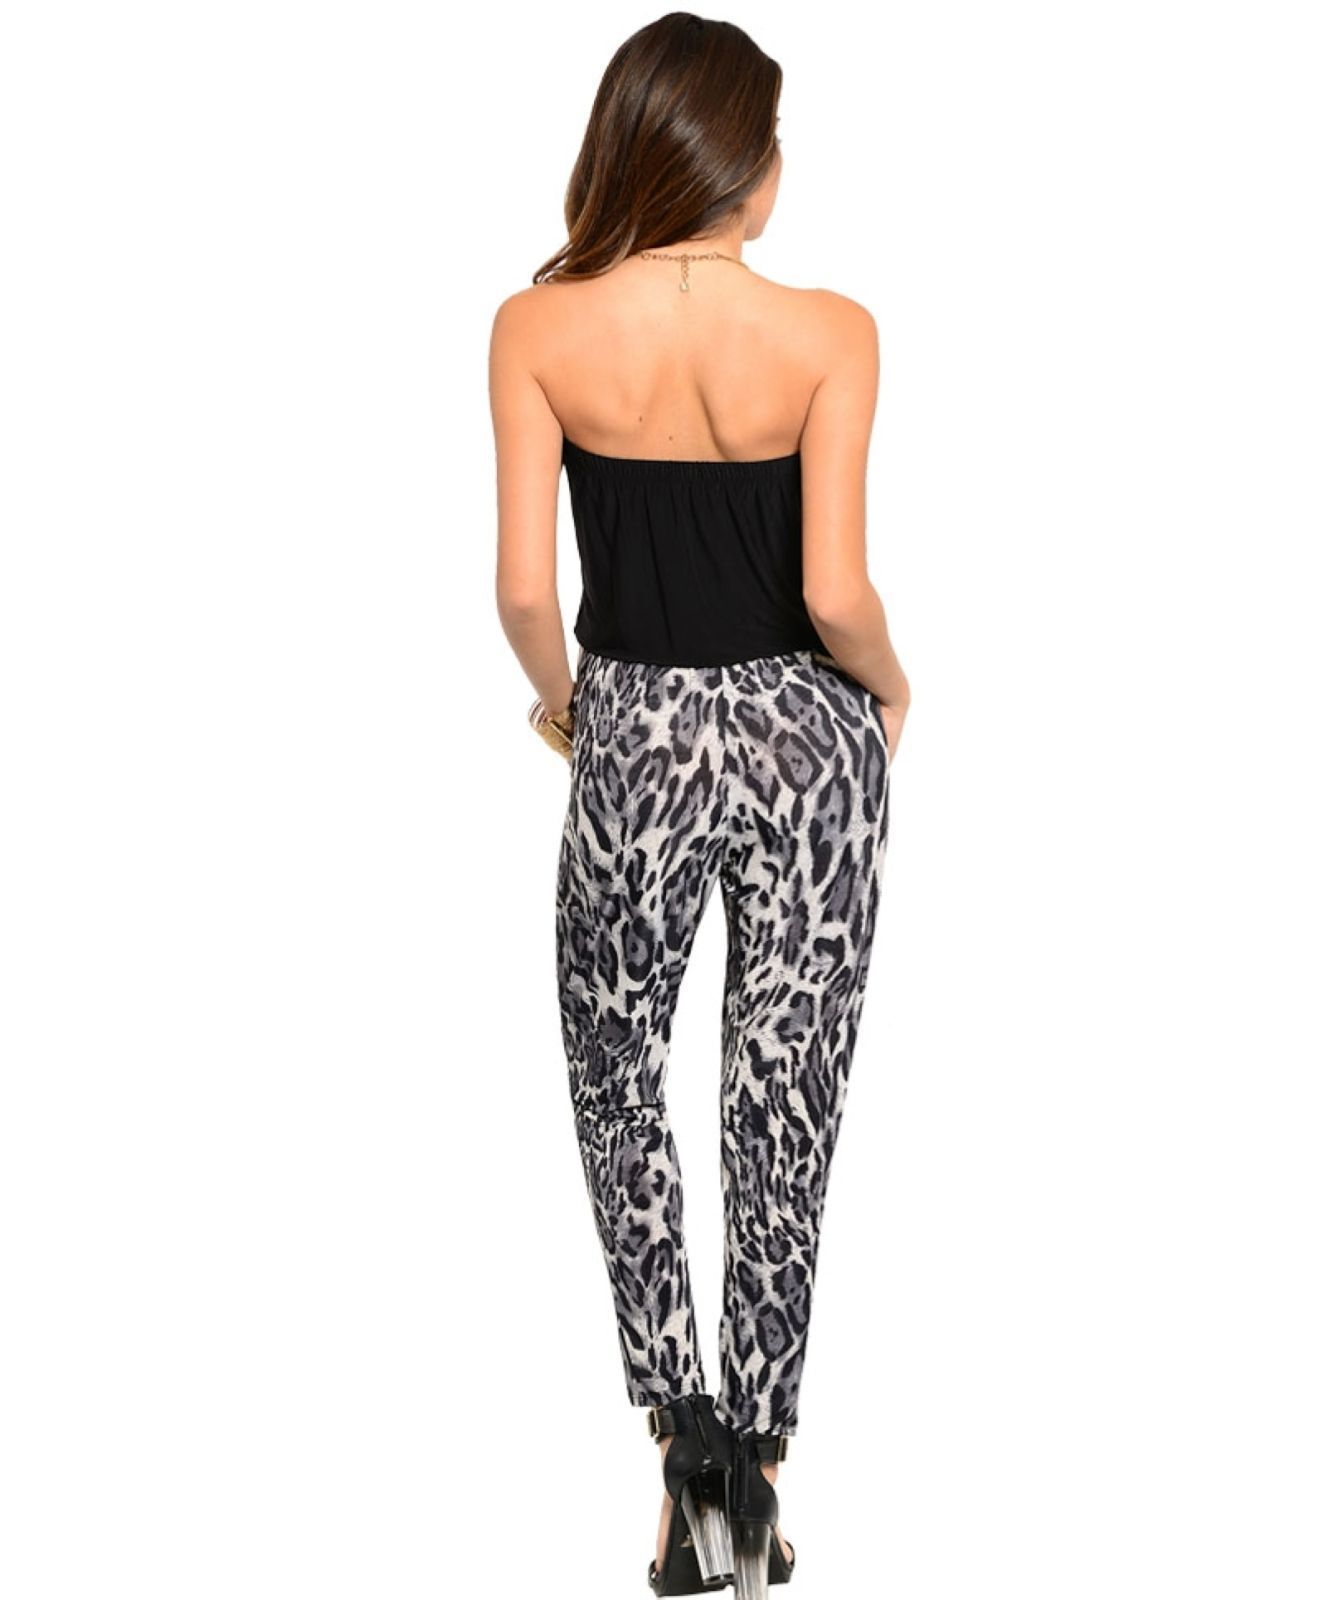 Image 1 of Playful Sexy White Black Leopard Jrs Party Romper, Strapless Black Top, S, M, L